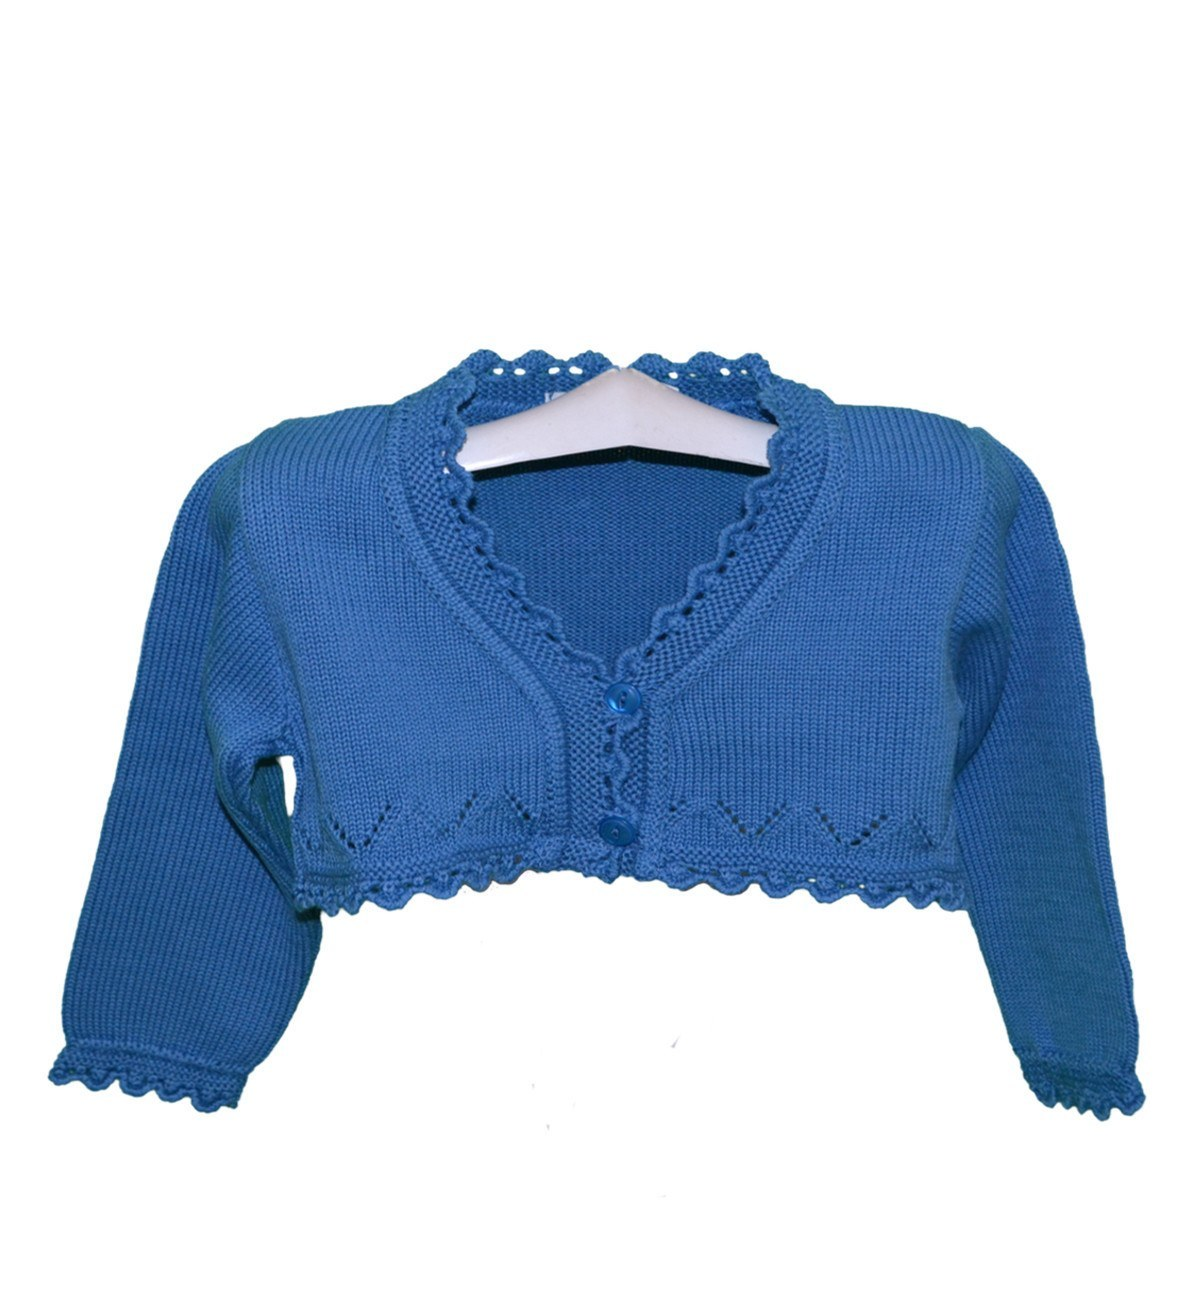 Spanish baby clothes | baby Cardigan & Coat | Blue Bolero cardigan |babymaC